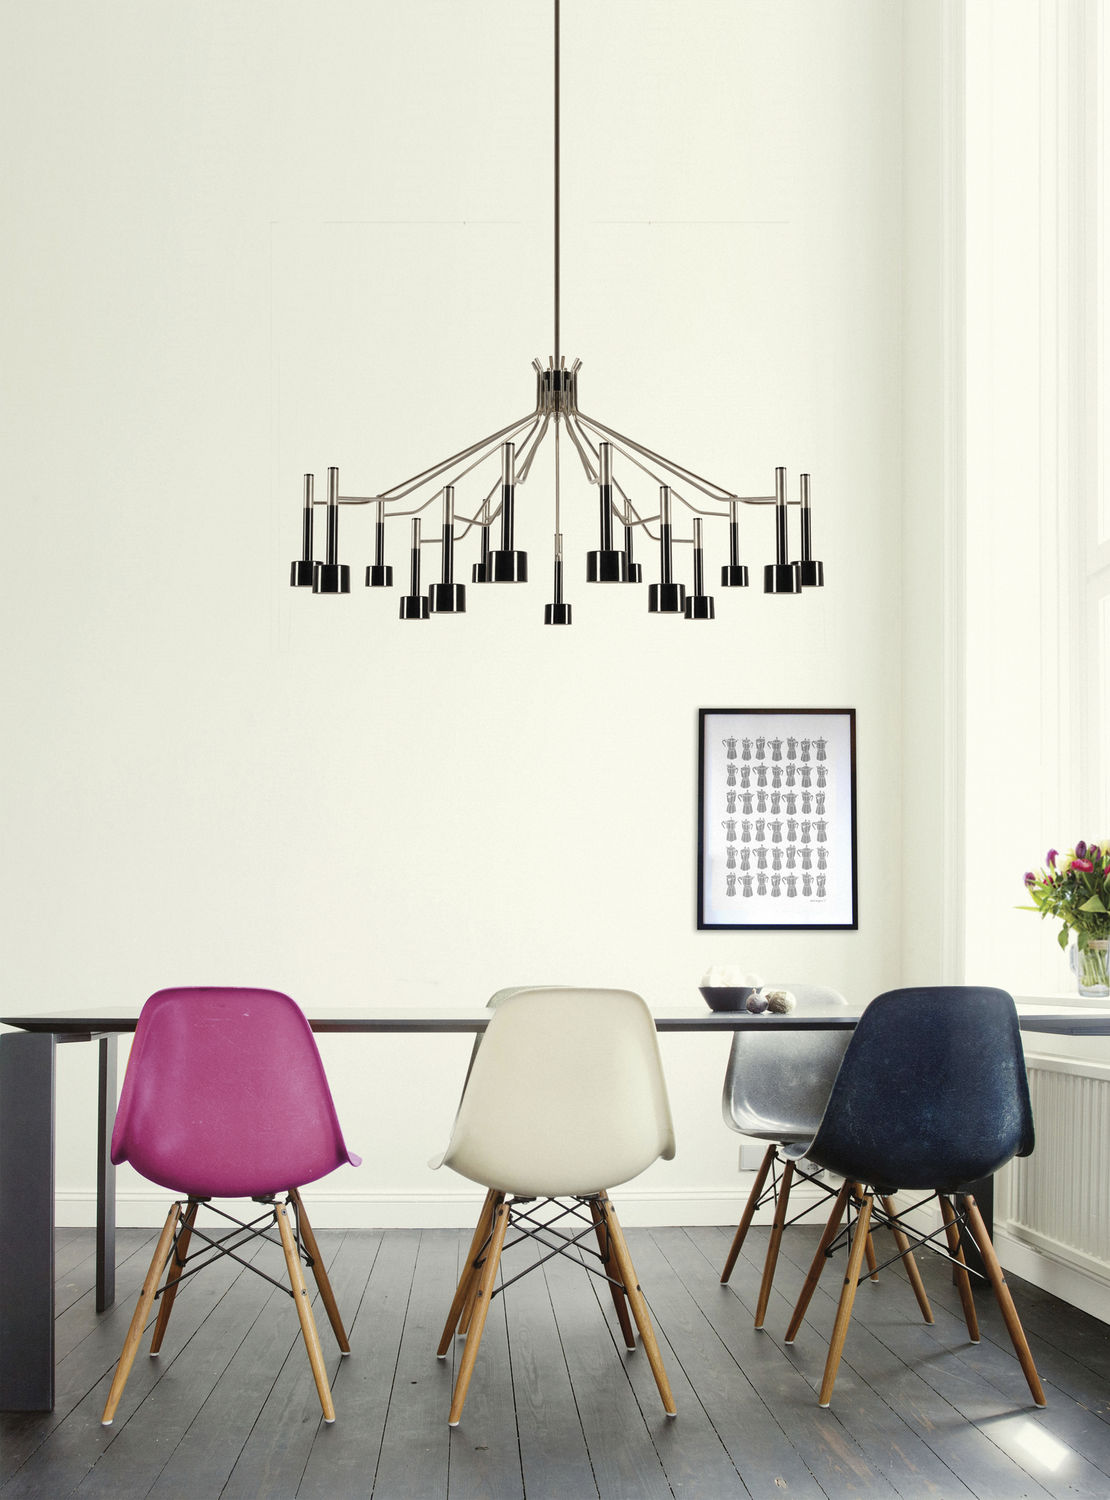 Top 5 Ways To Turn Your Industrial Dining Room Into An Amazing Space 8